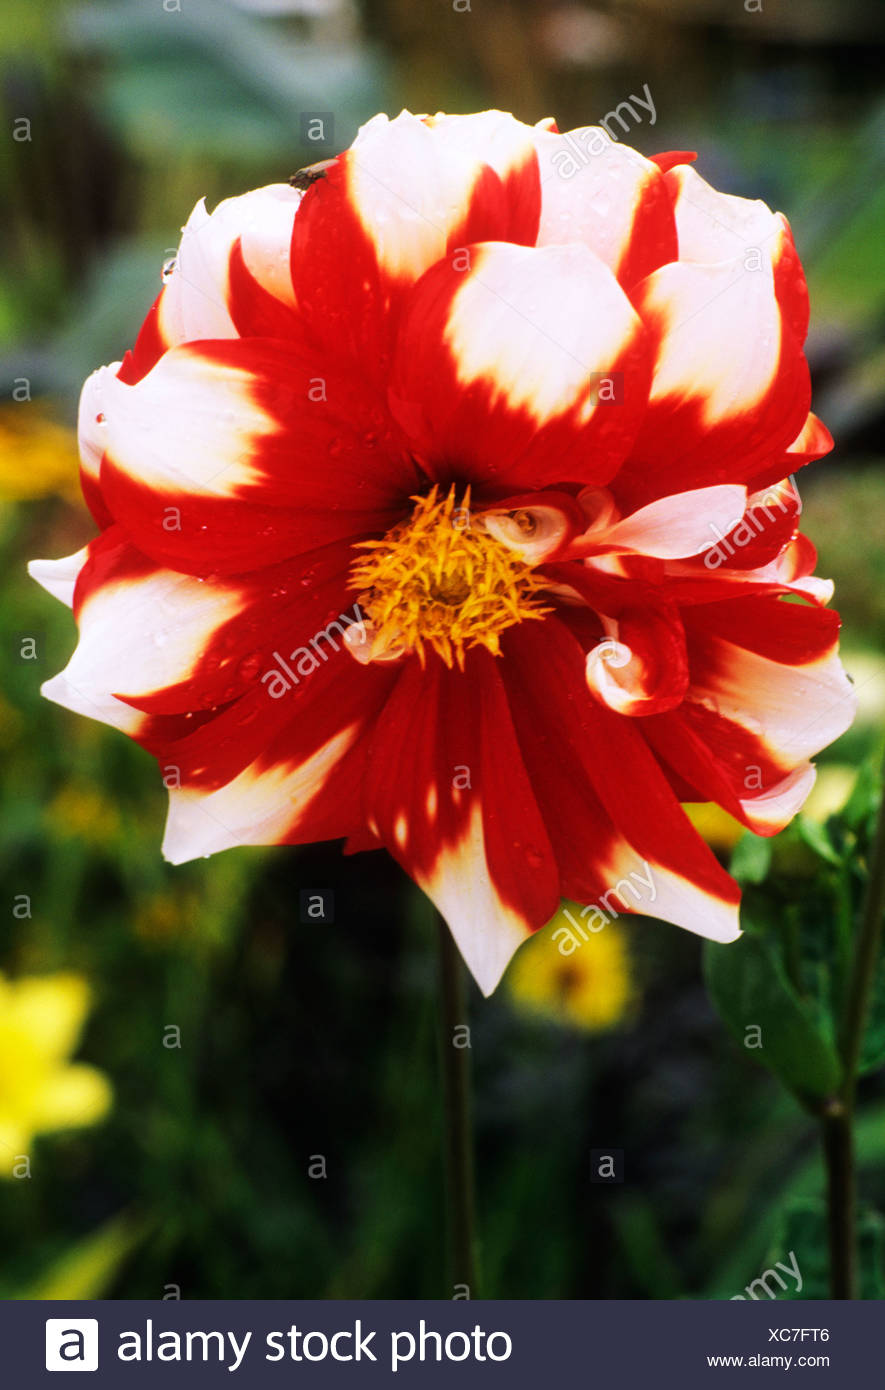 Dahlia Fire And Ice Red And White Flower Flowers Garden Plant